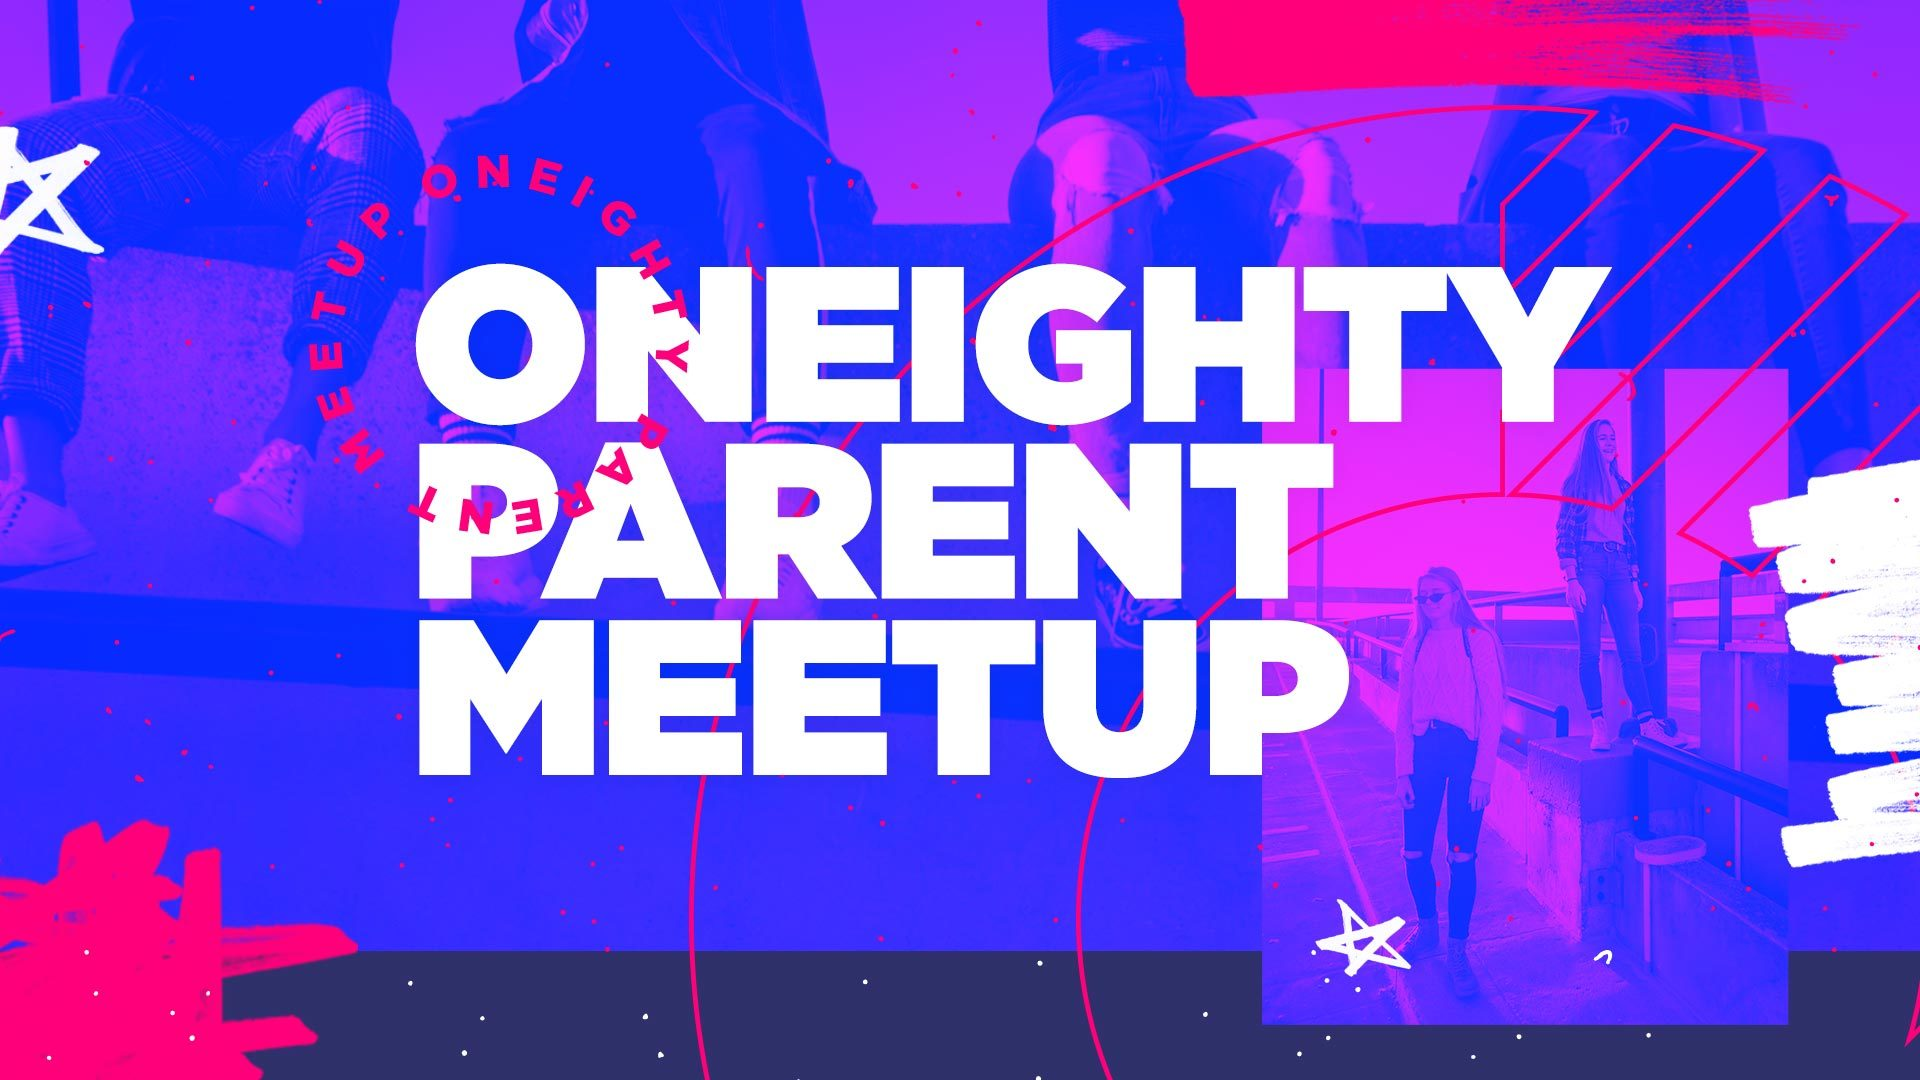 Oneighty Parent Meetup Wide